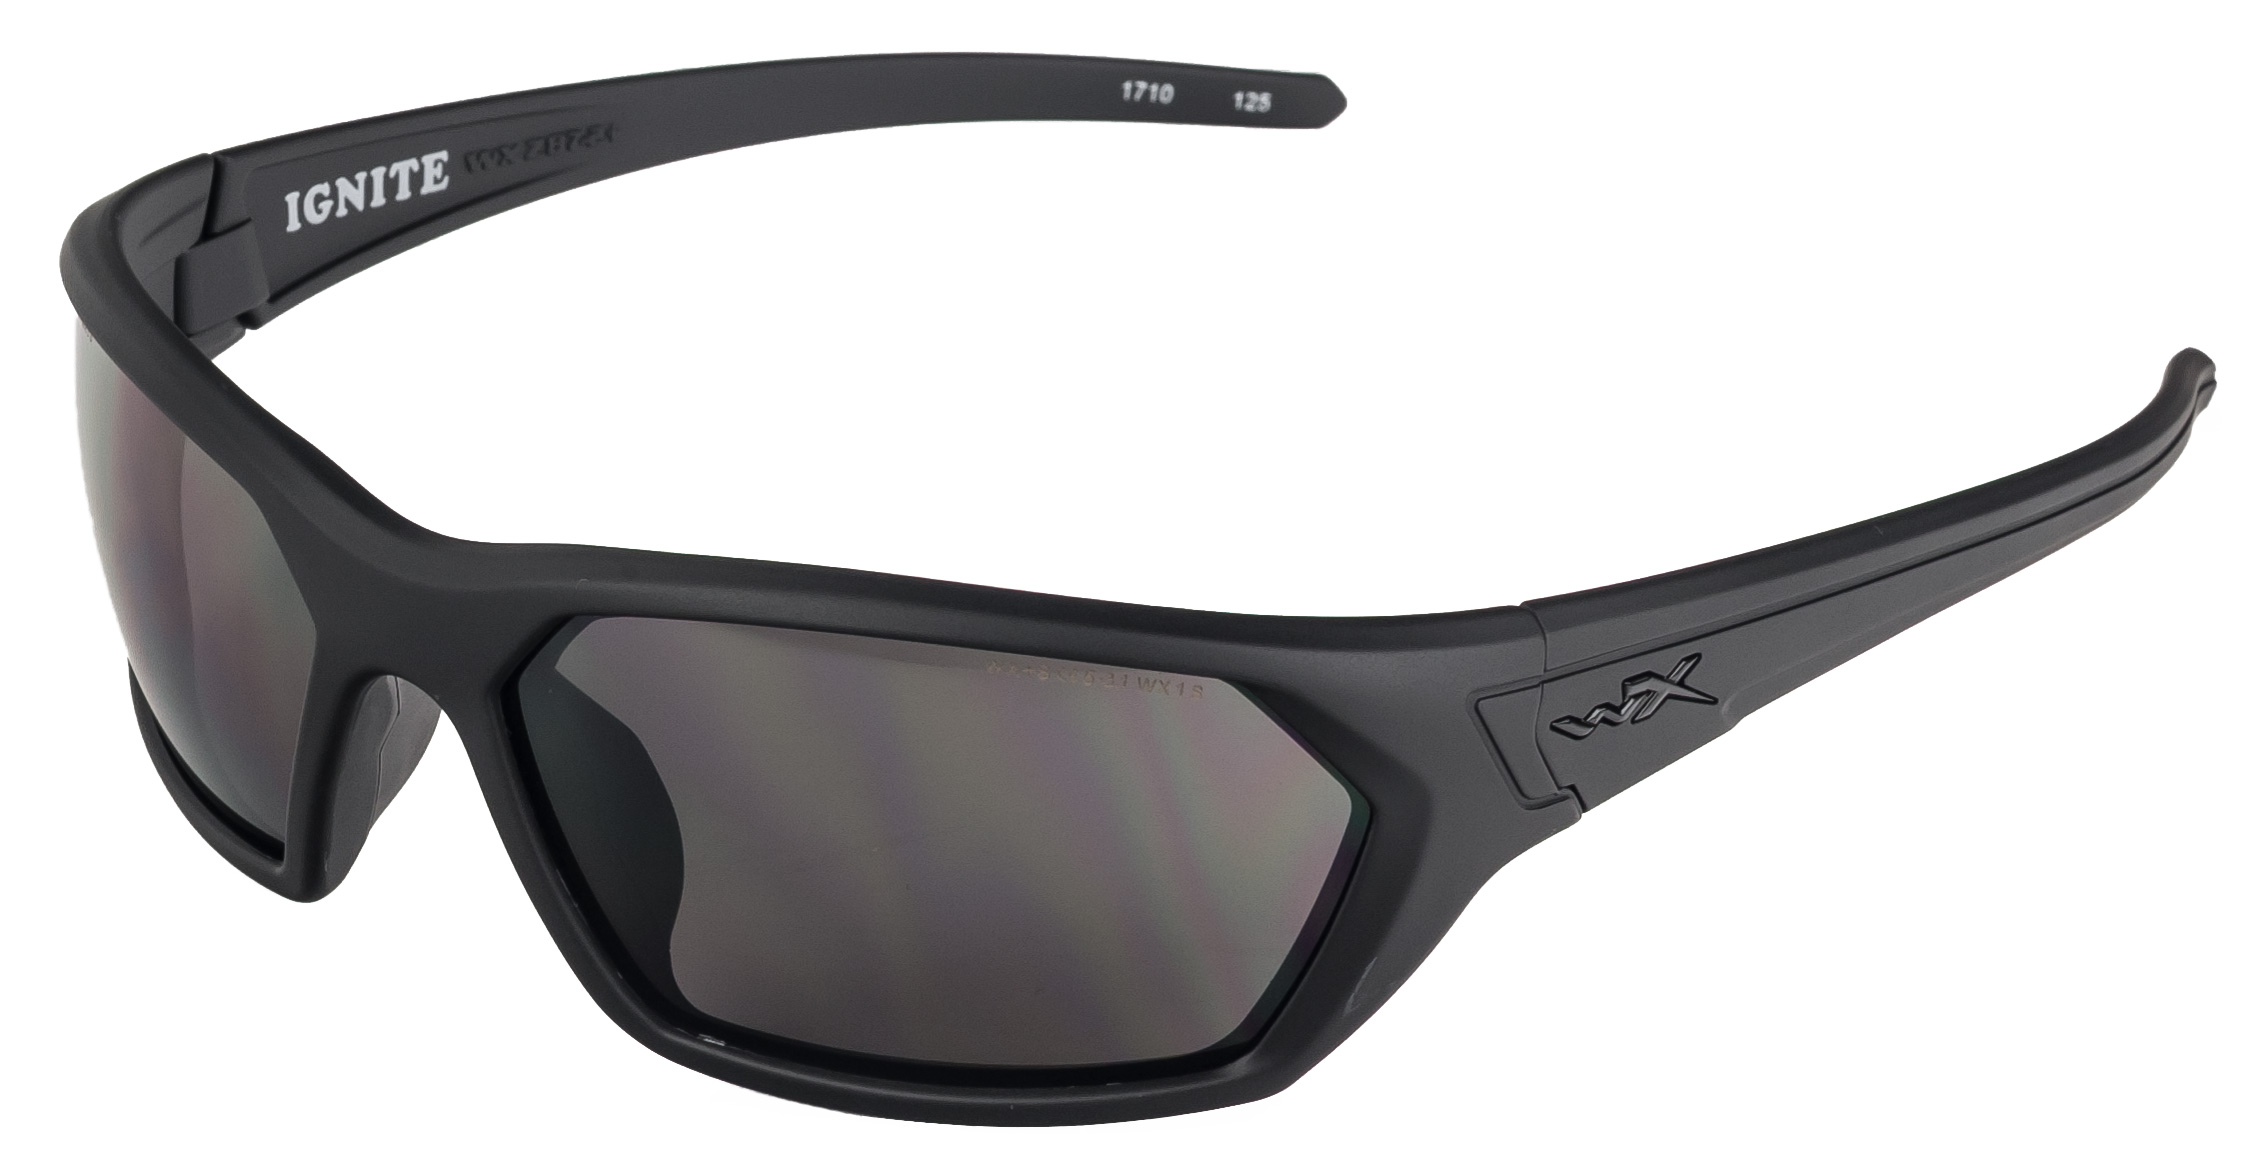 e528f4376835 Wiley X Active Sunglasses, Wiley X Active Lifestyle Series Goggles & Safety  Eyewear, Wiley X Safety Glasses.